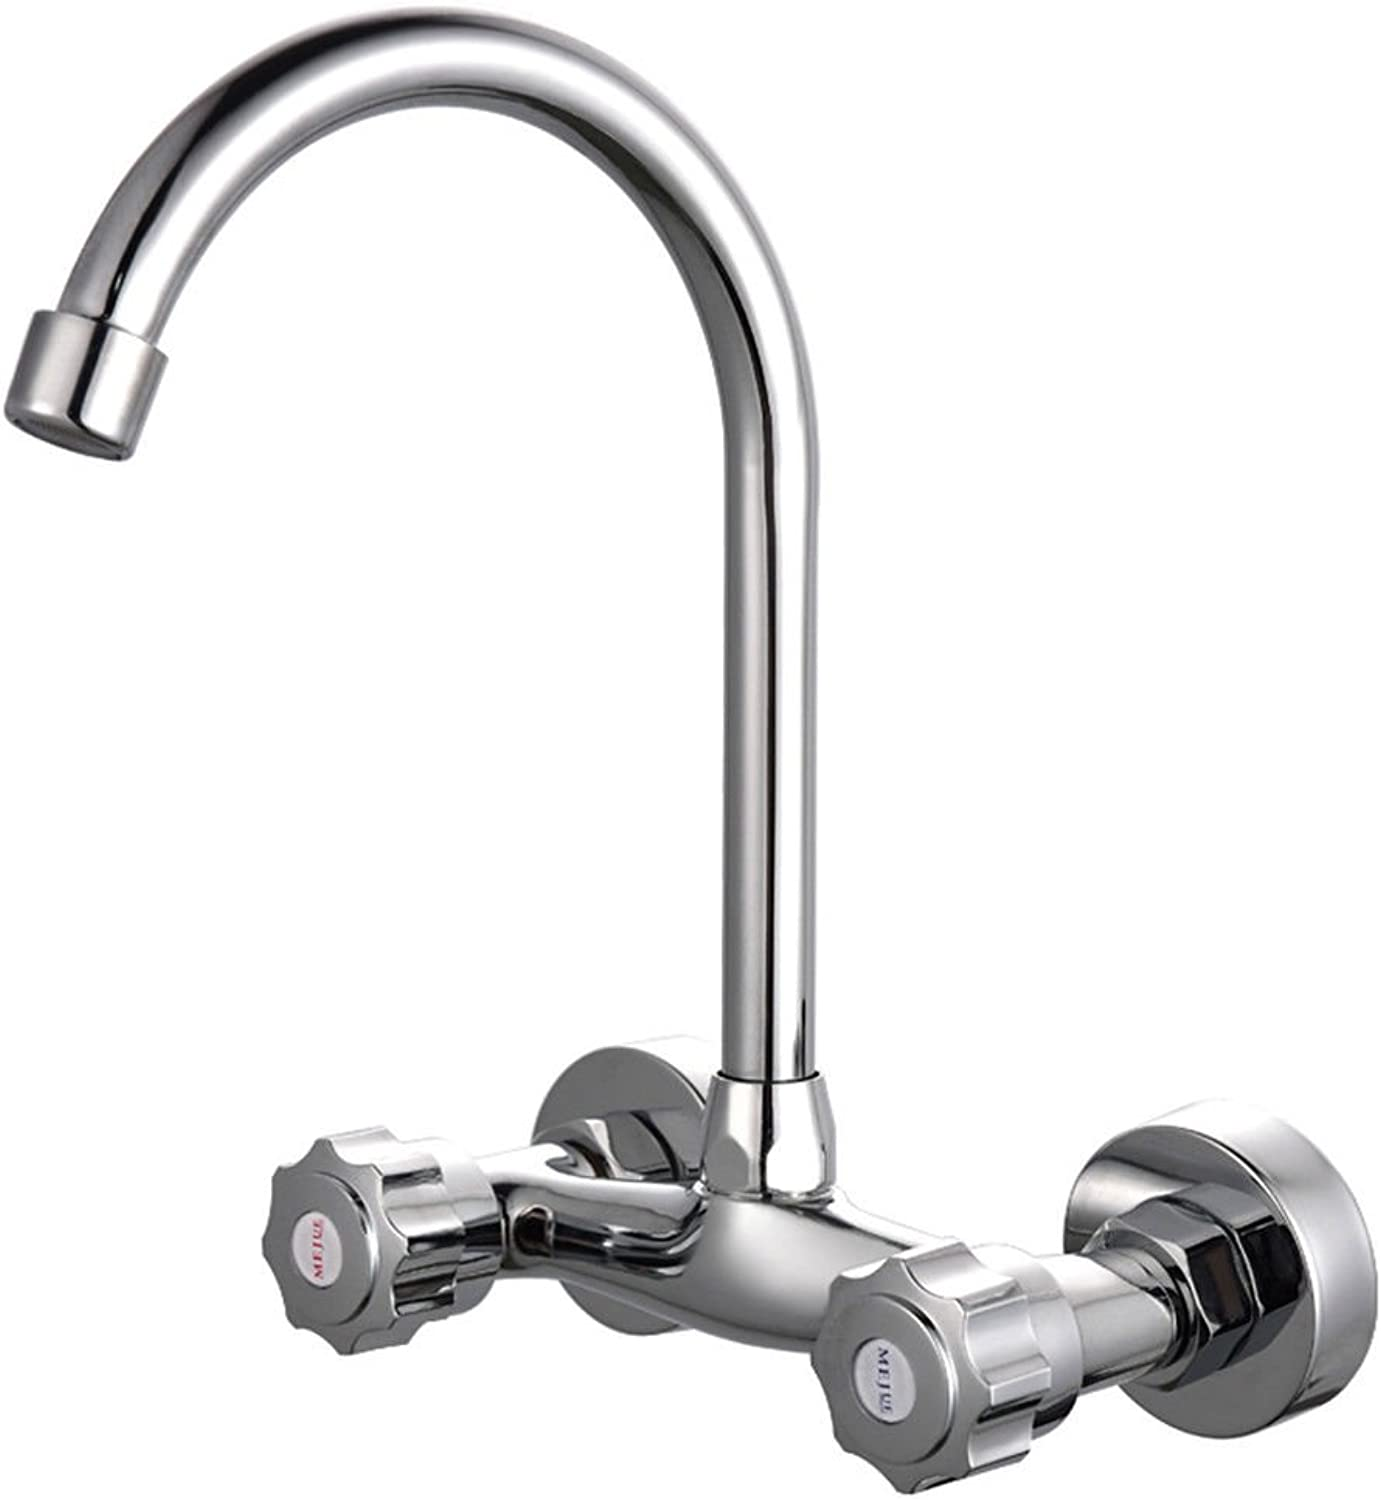 AQMMi Bathroom Sink Faucet Basin Mixer Tap Brass in-Wall Hot and Cold Water Wall-Mounted Basin Sink Tap Bathroom Bar Faucet